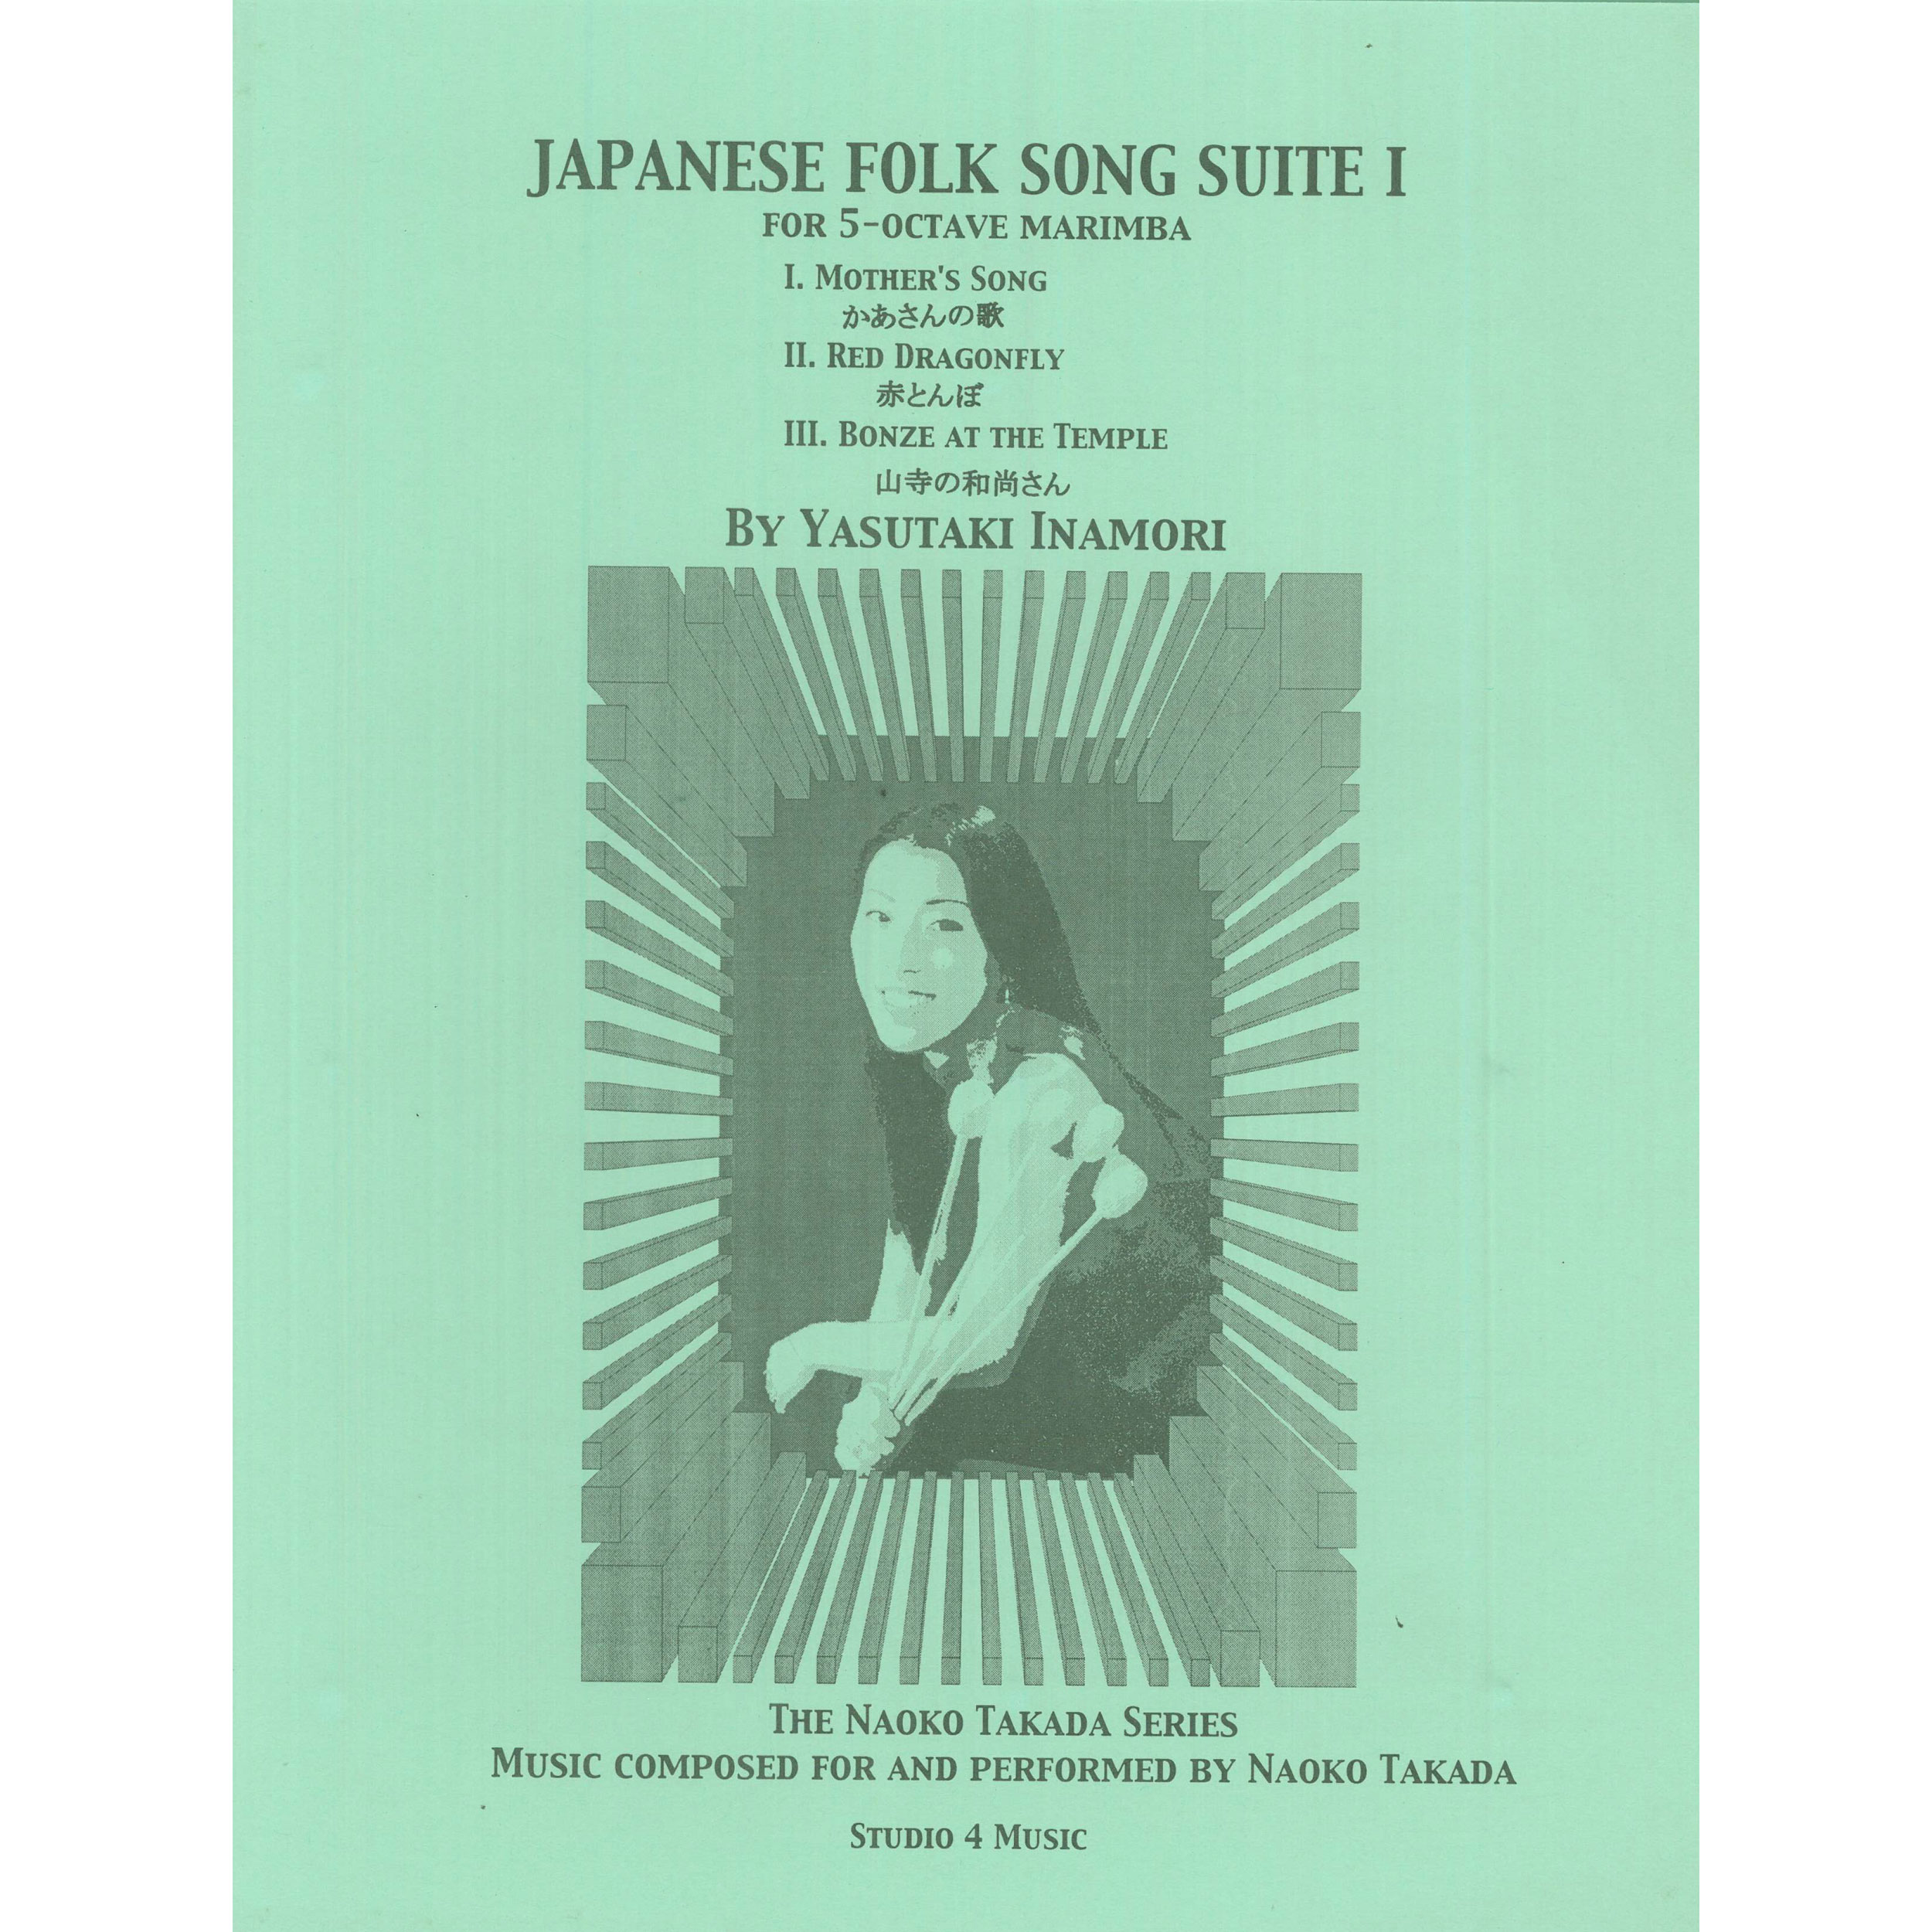 Japanese Folk Song Suite I by Yasutaki Inamori